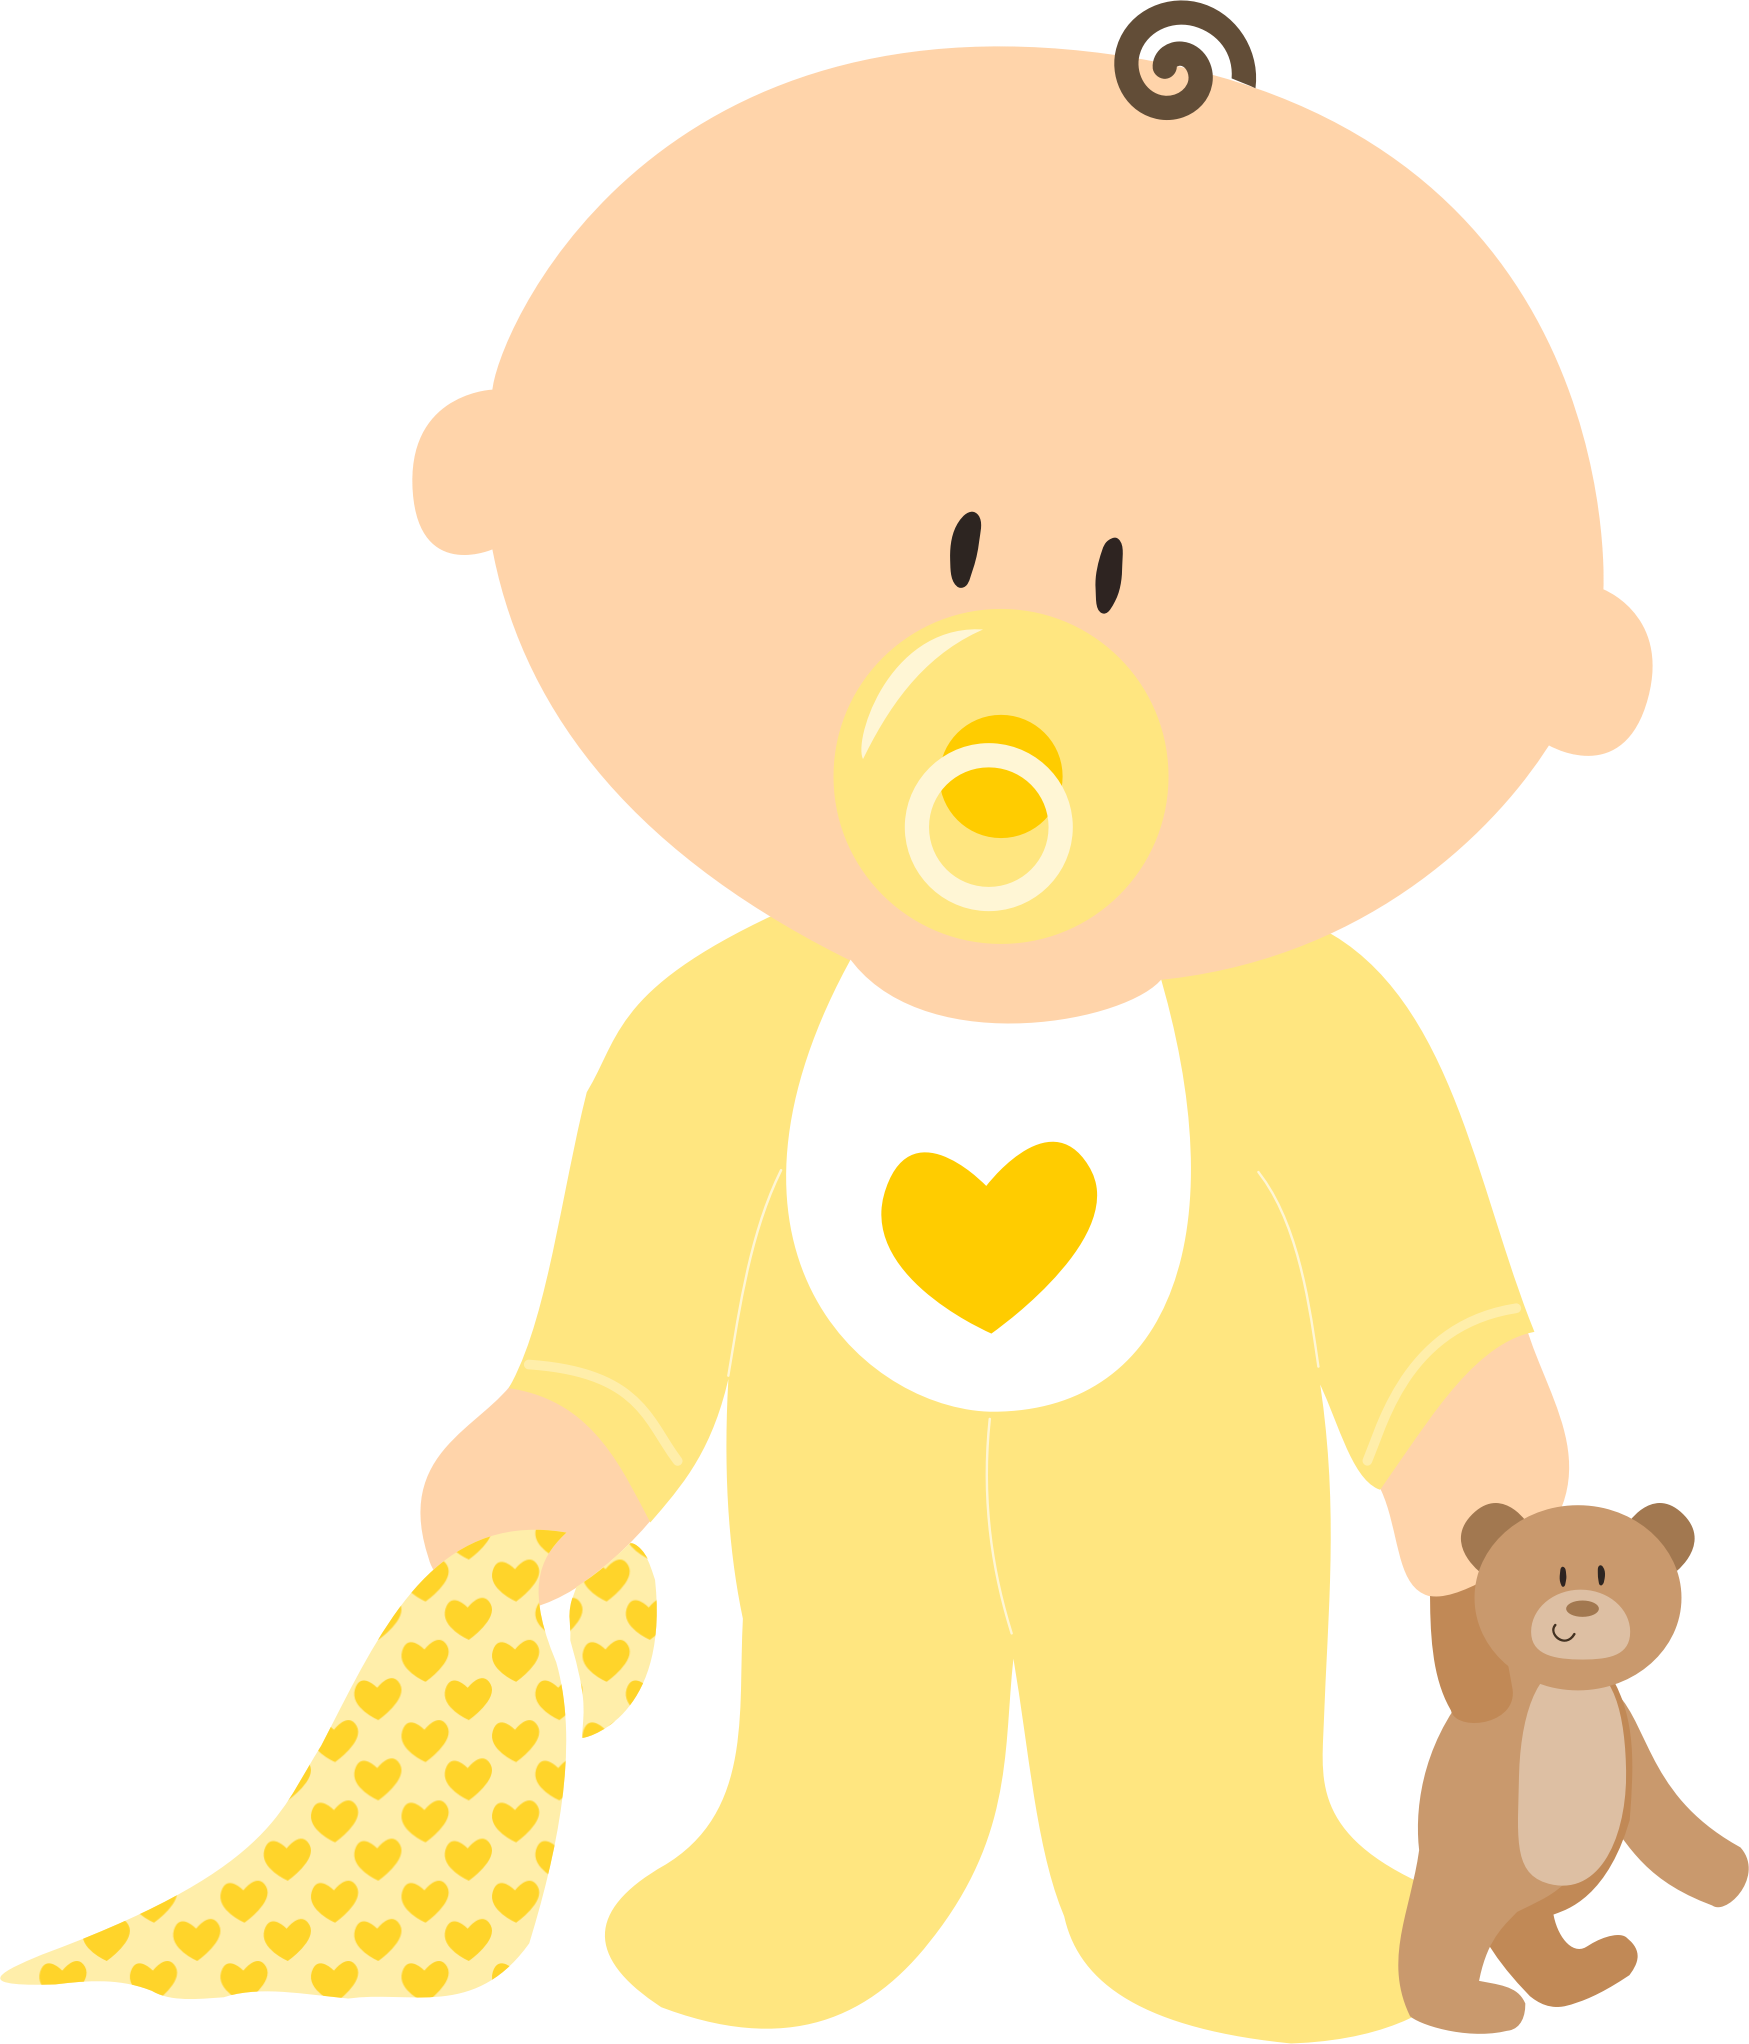 Infant clipart 2 baby. Boy icons png free